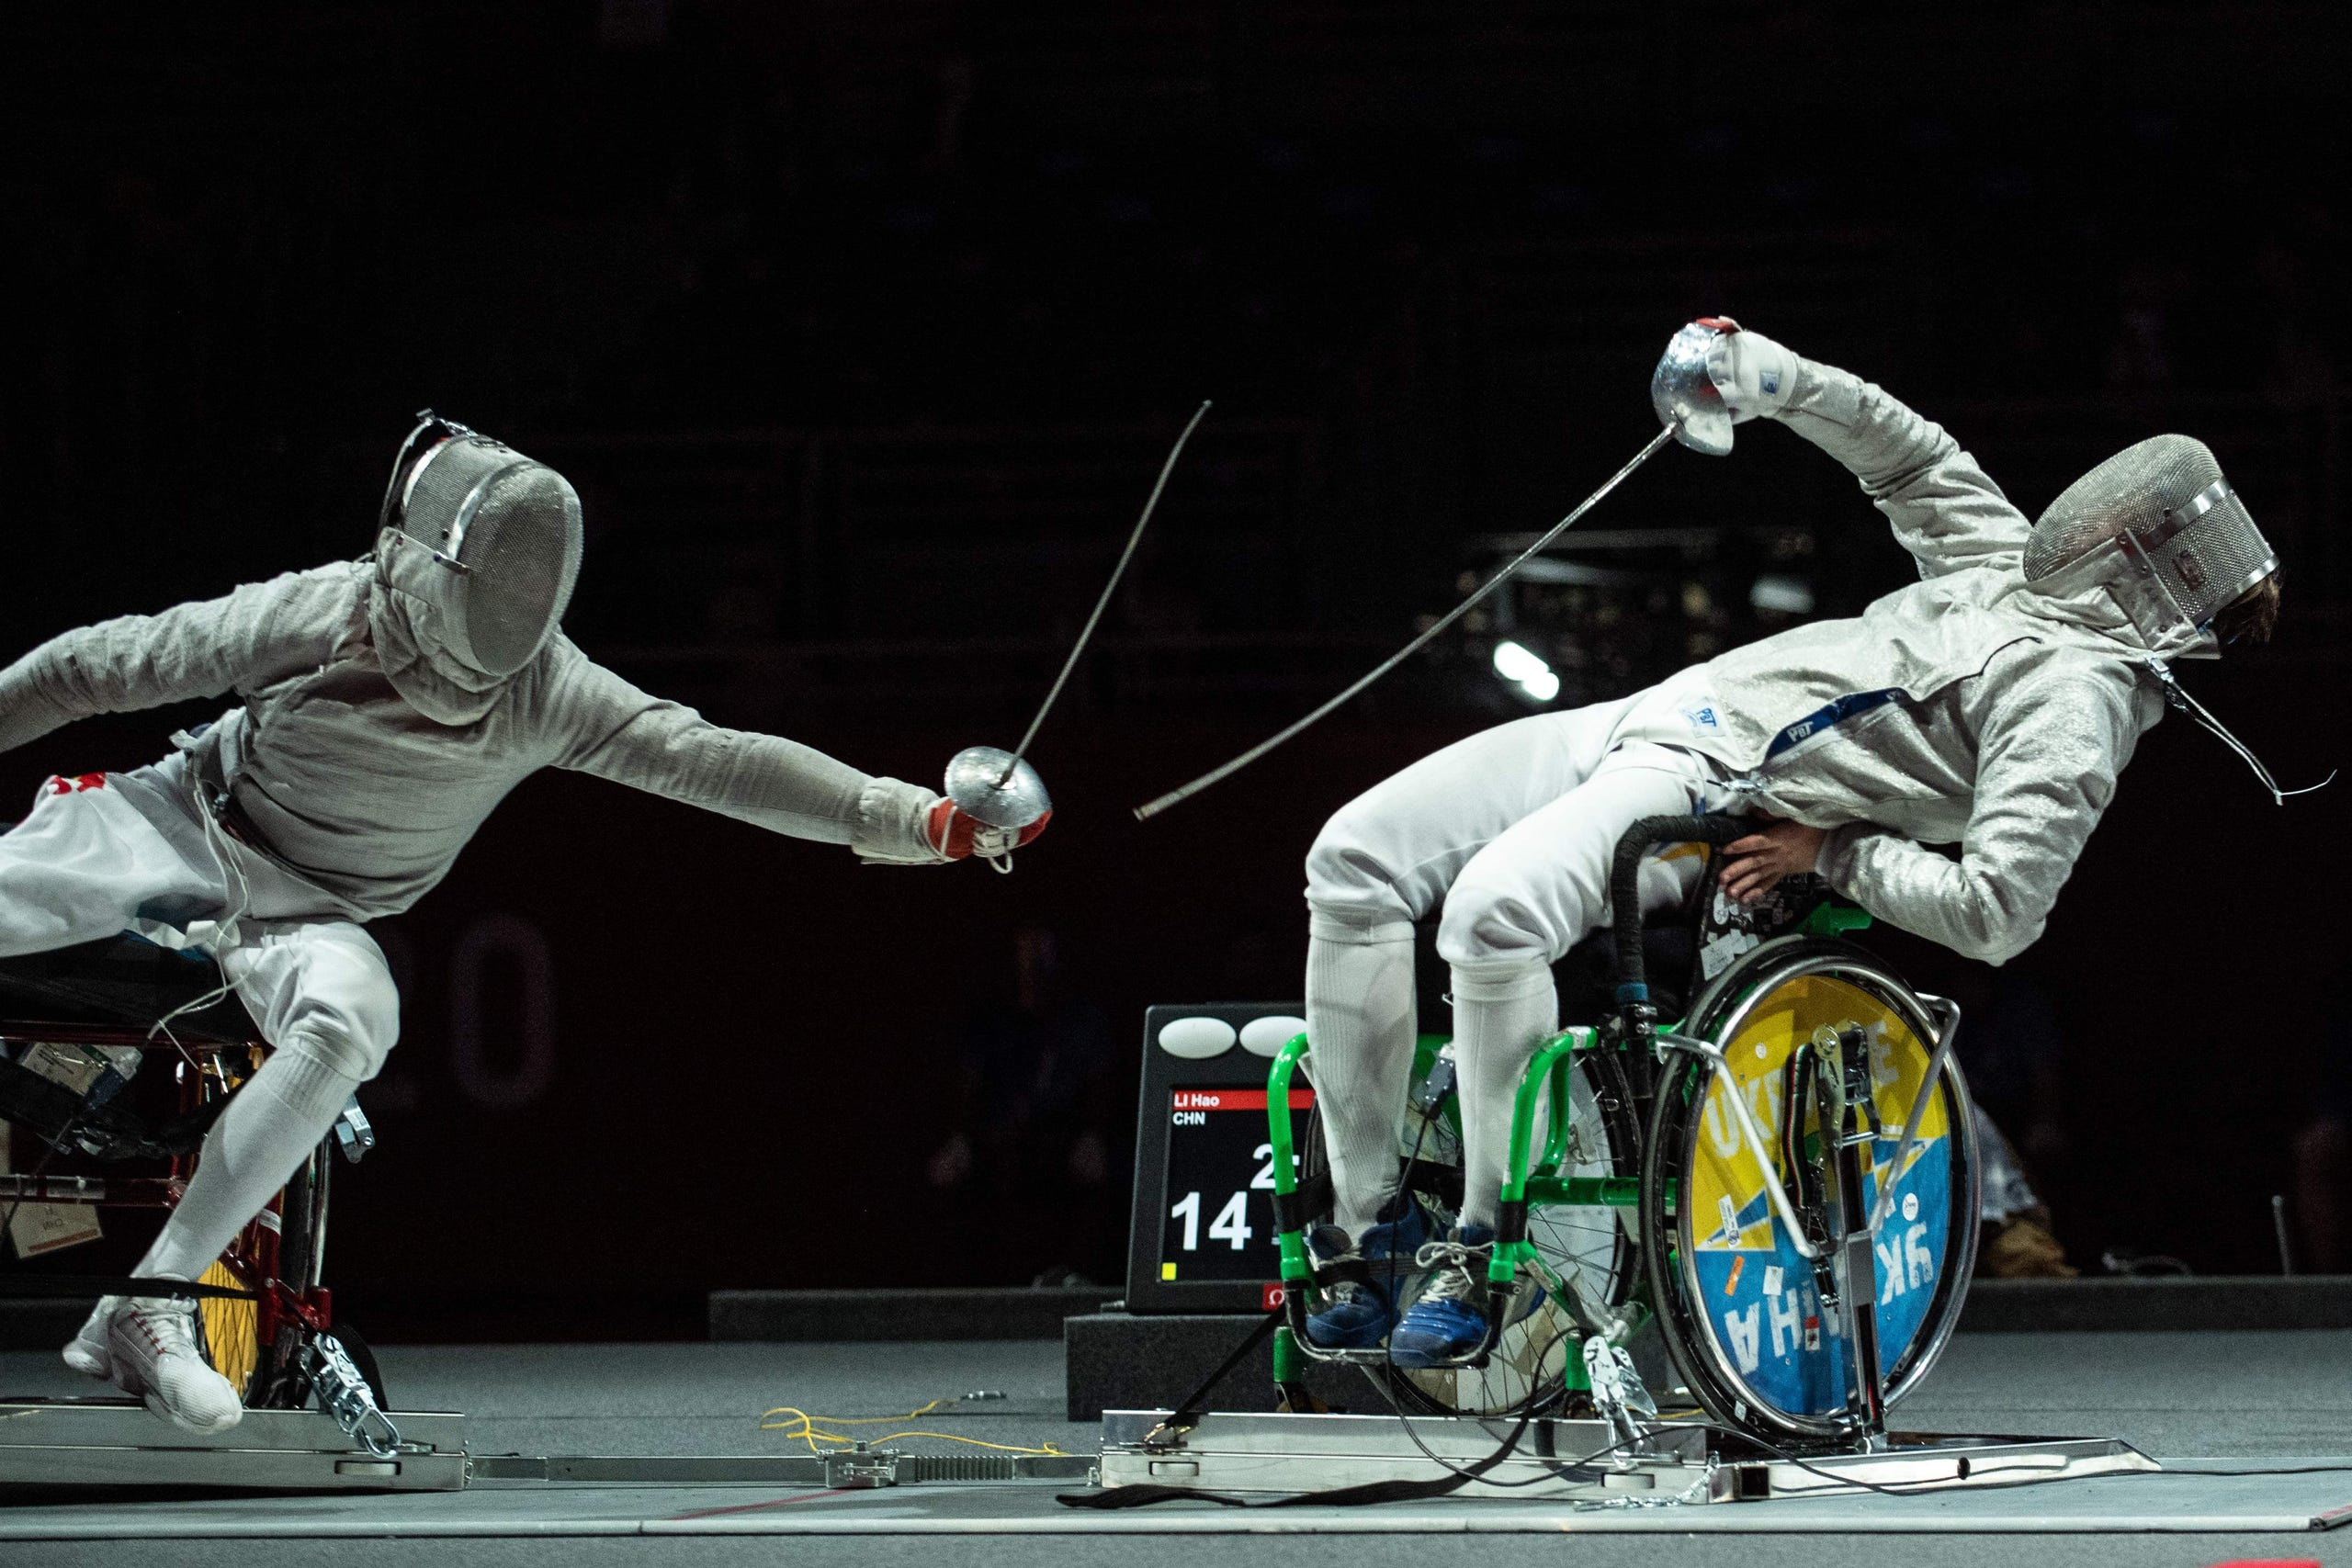 August 25, 2021: China's Li Hao (L) competes with Ukraine's Artem Manko during the men's sabre individual category A gold medal wheelchair fencing bout at the Tokyo 2020 Paralympic Games at the Makuhari Messe Hall in Chiba.